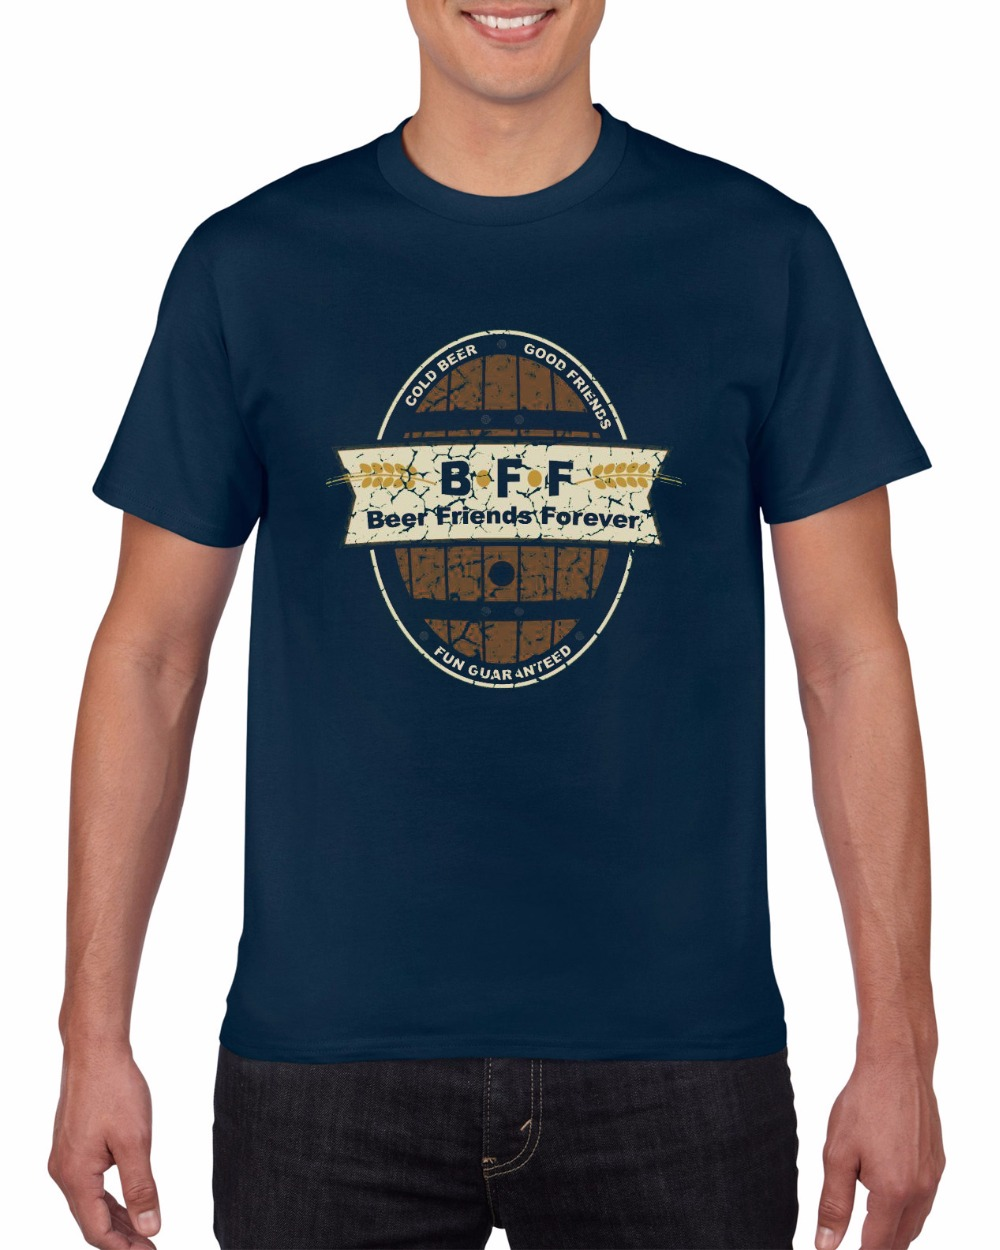 Design your own t-shirt long sleeve - New Fashion Man S Short Sleeve Funny Tees Man Short Beer Friends Forever Design Your Own T